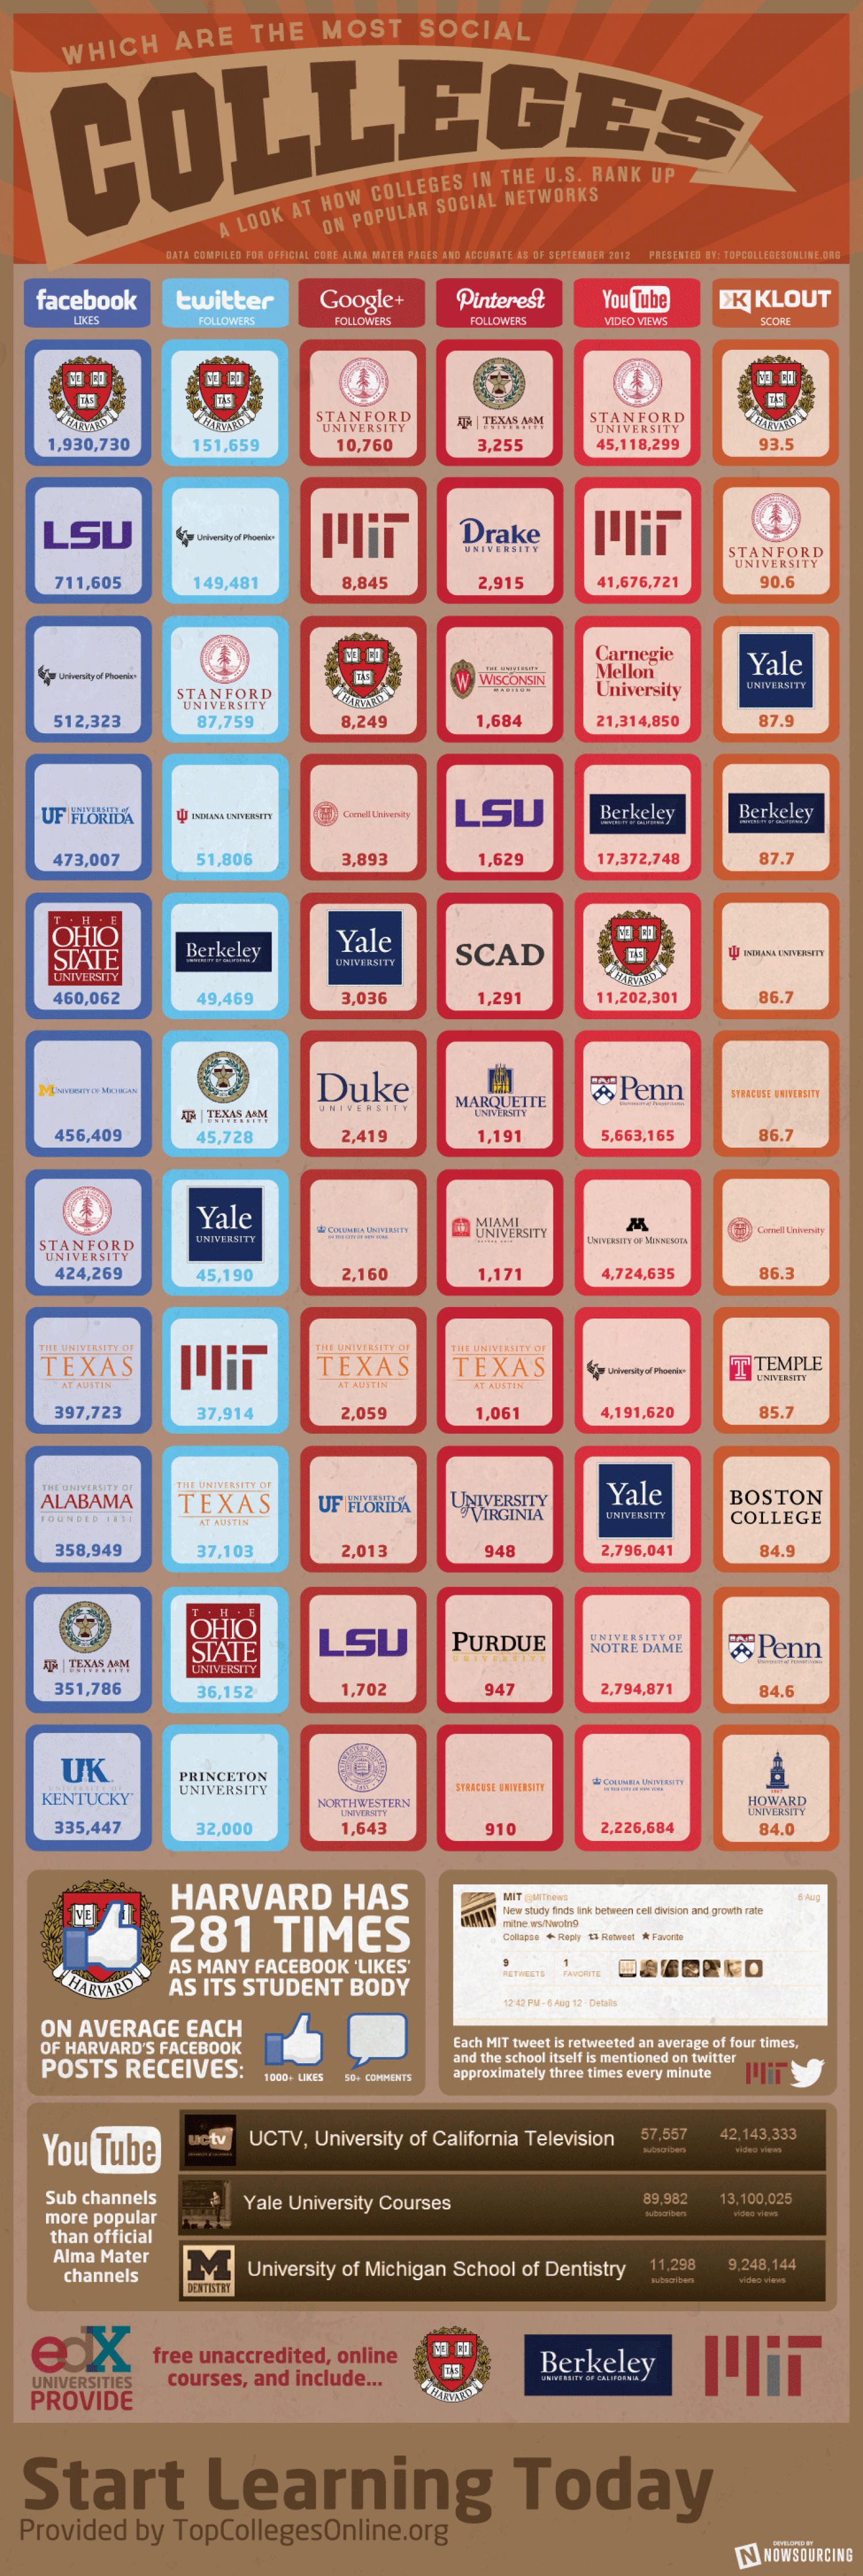 Which Are the Most Social Colleges? Infographic